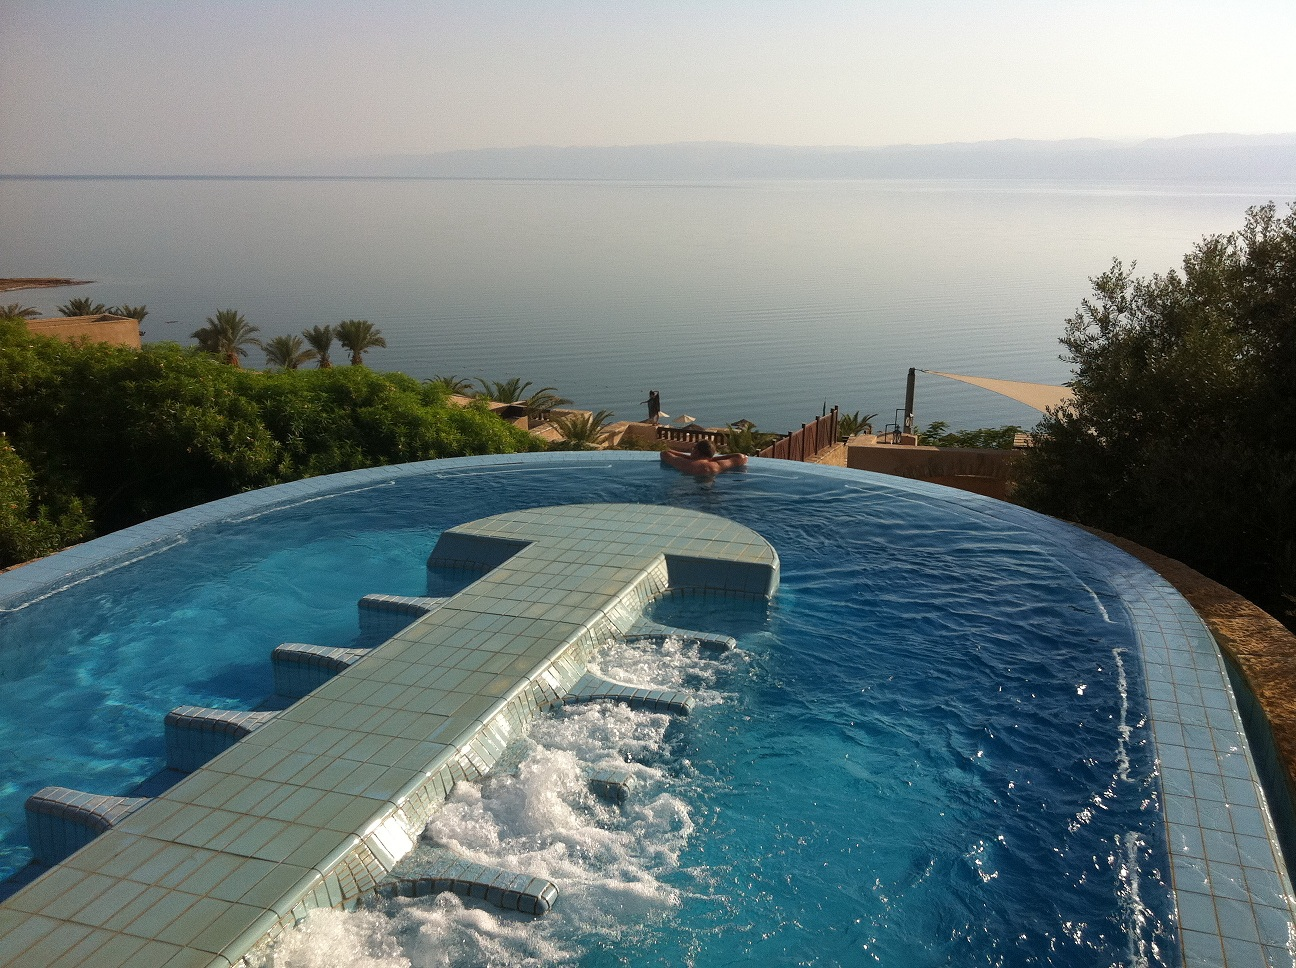 Spa Nevers Bethany Beyond The Jordan And The Dead Sea